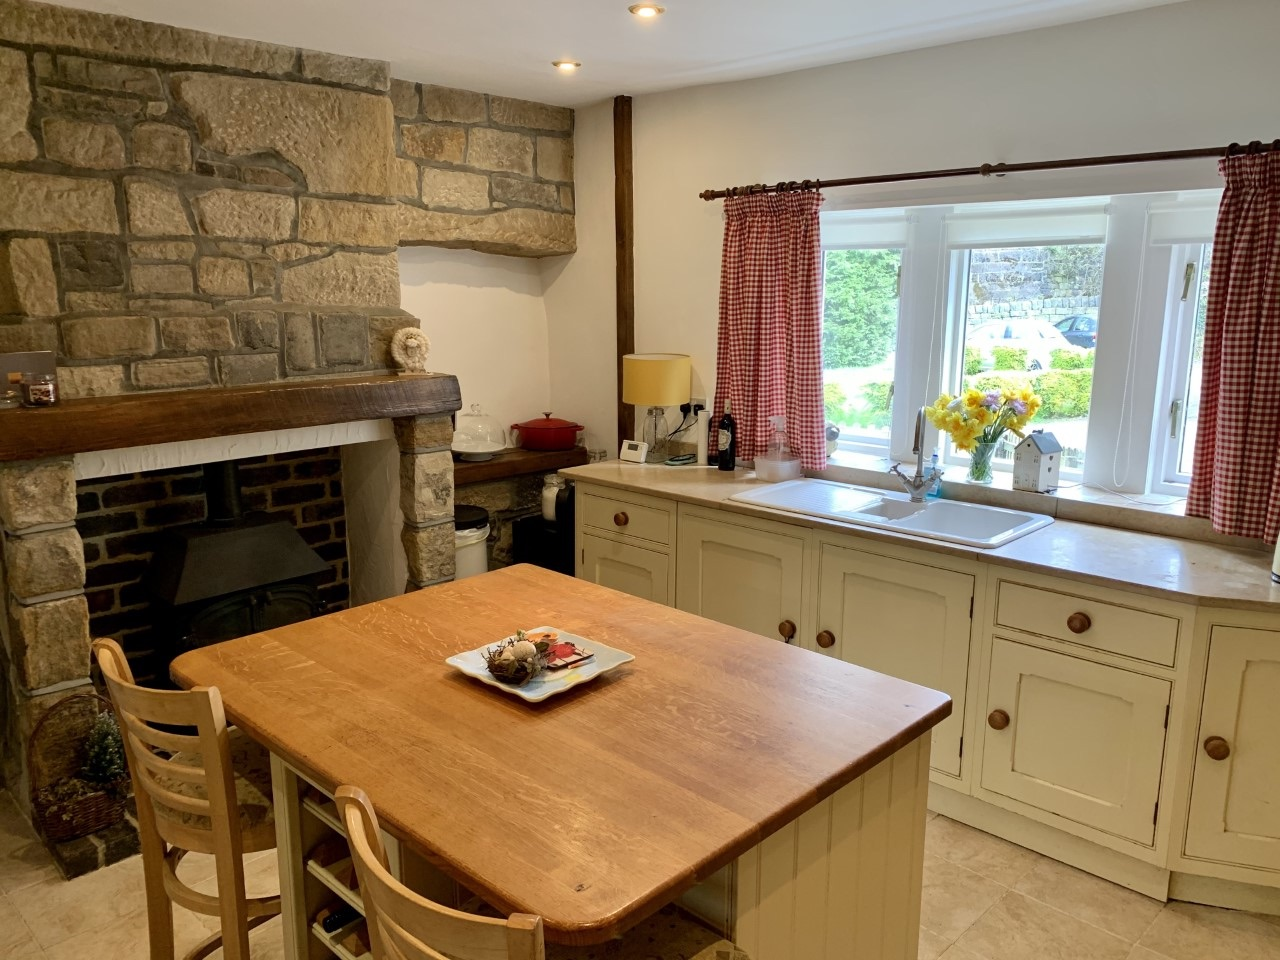 3 bedroom detached house For Sale in Calderdale - Photograph 6.